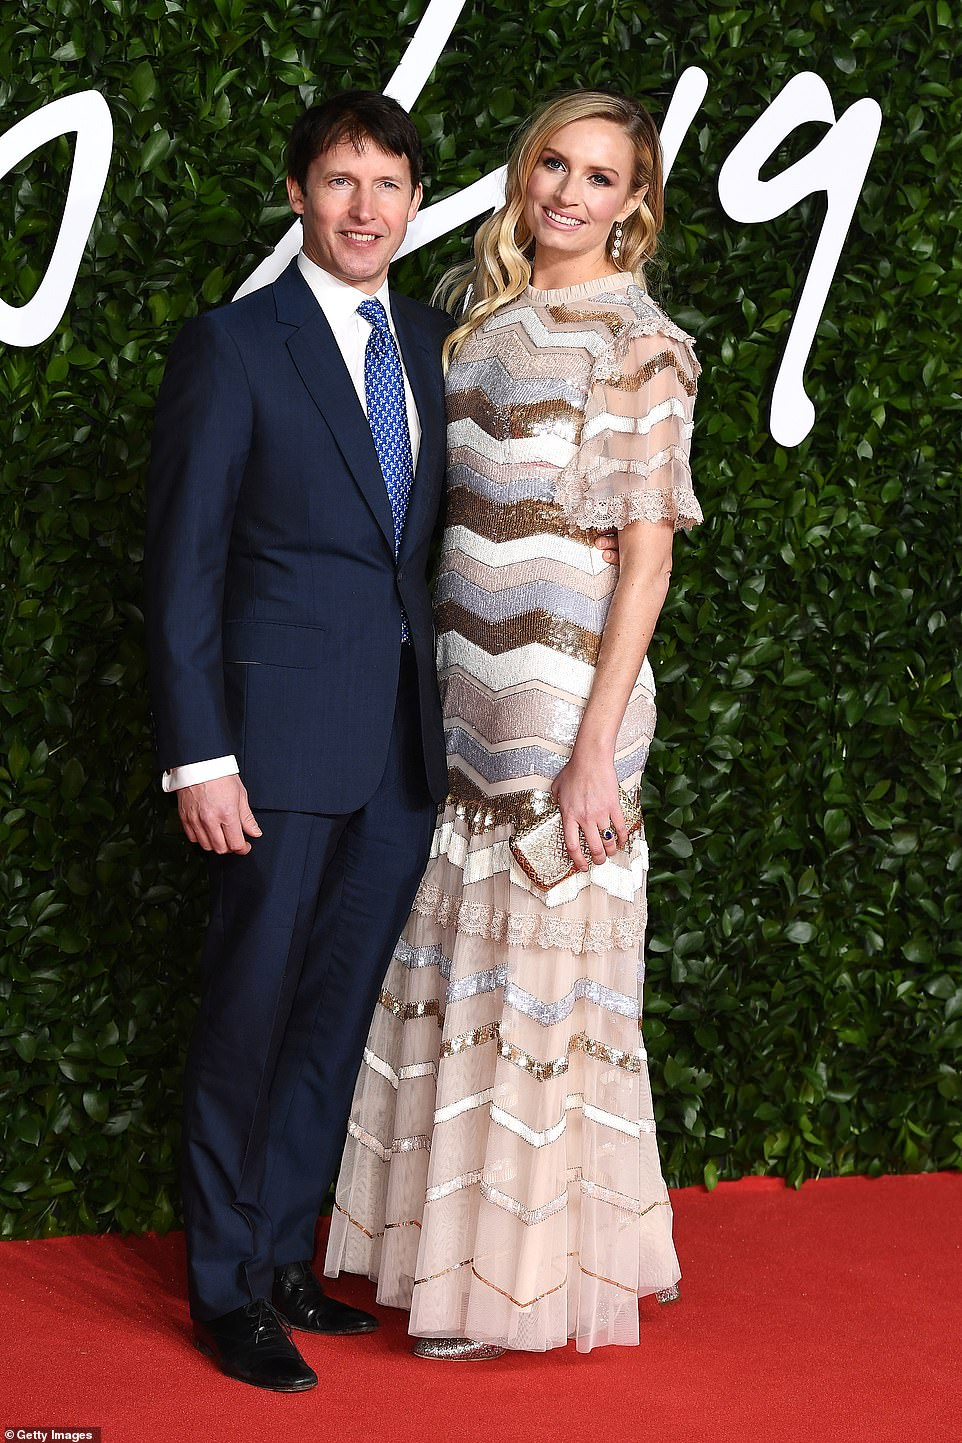 Hitting the right notes: Singer-songwriter James Blunt and his wife Sofia, who wore Needle & Thread, attended the event